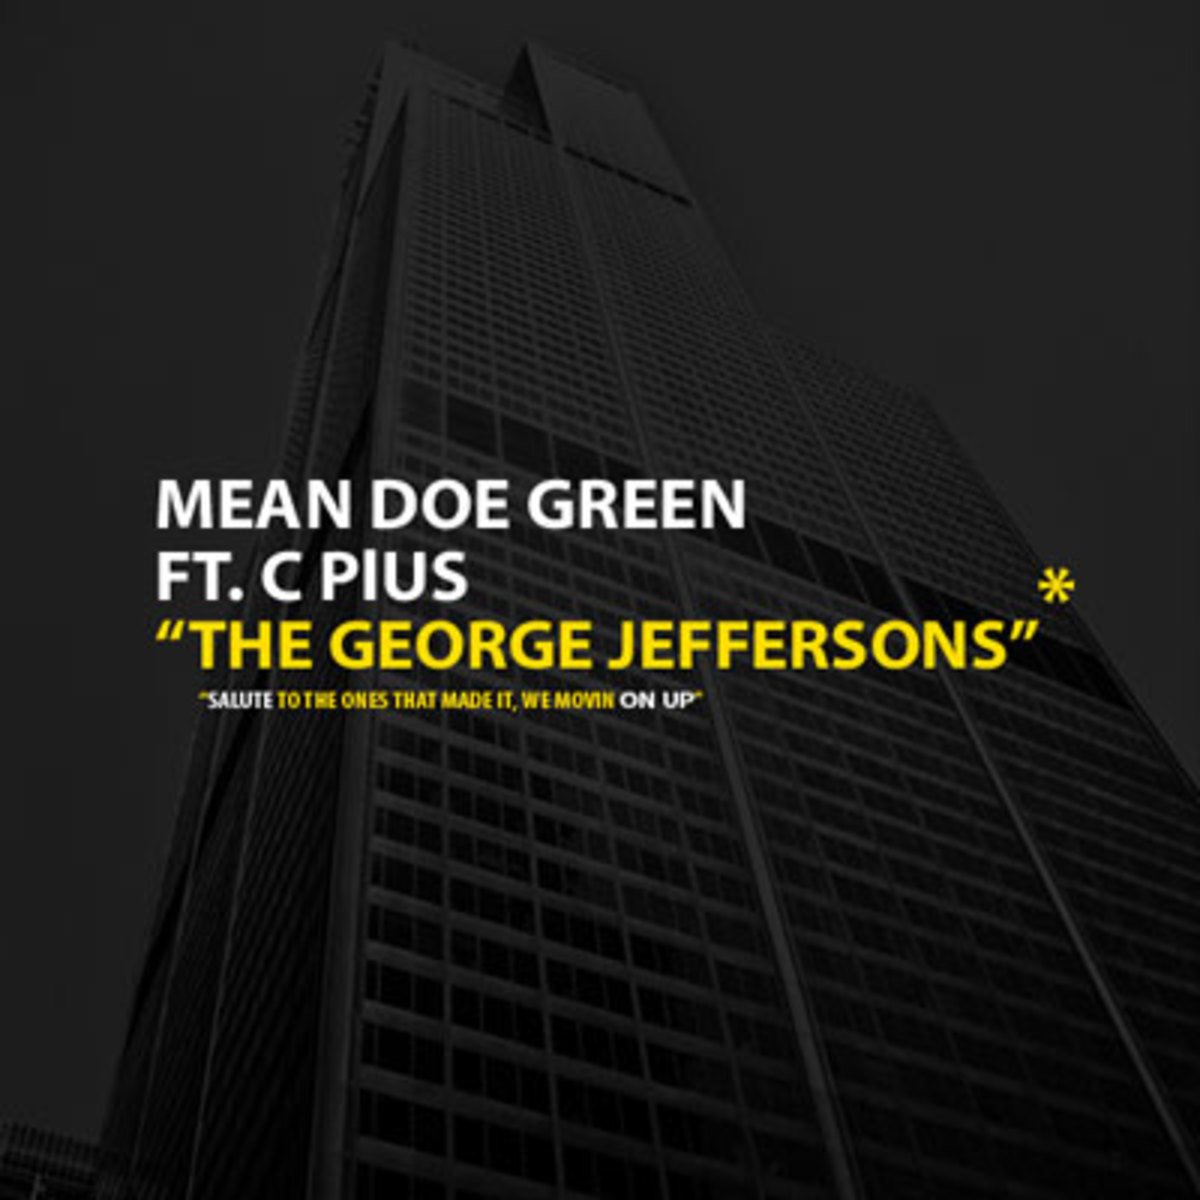 meandoegreen-thegeorgejeffersons.jpg